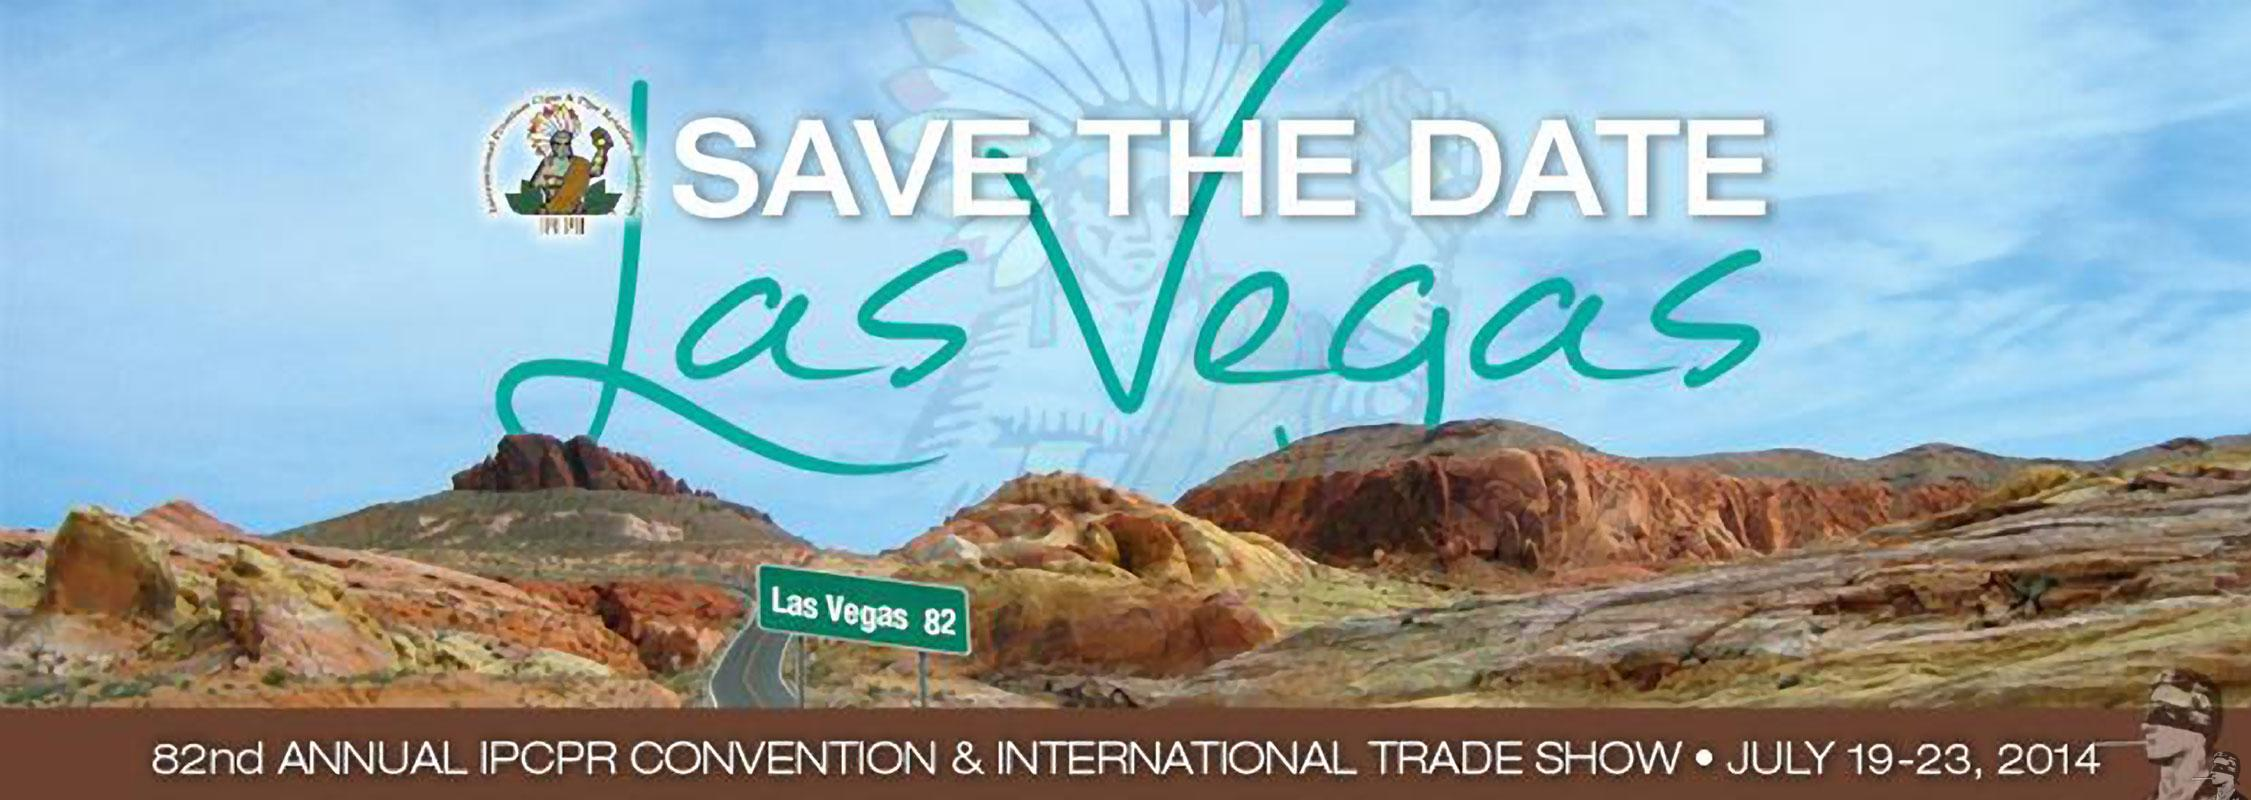 Editorial: Thoughts on IPCPR 2014